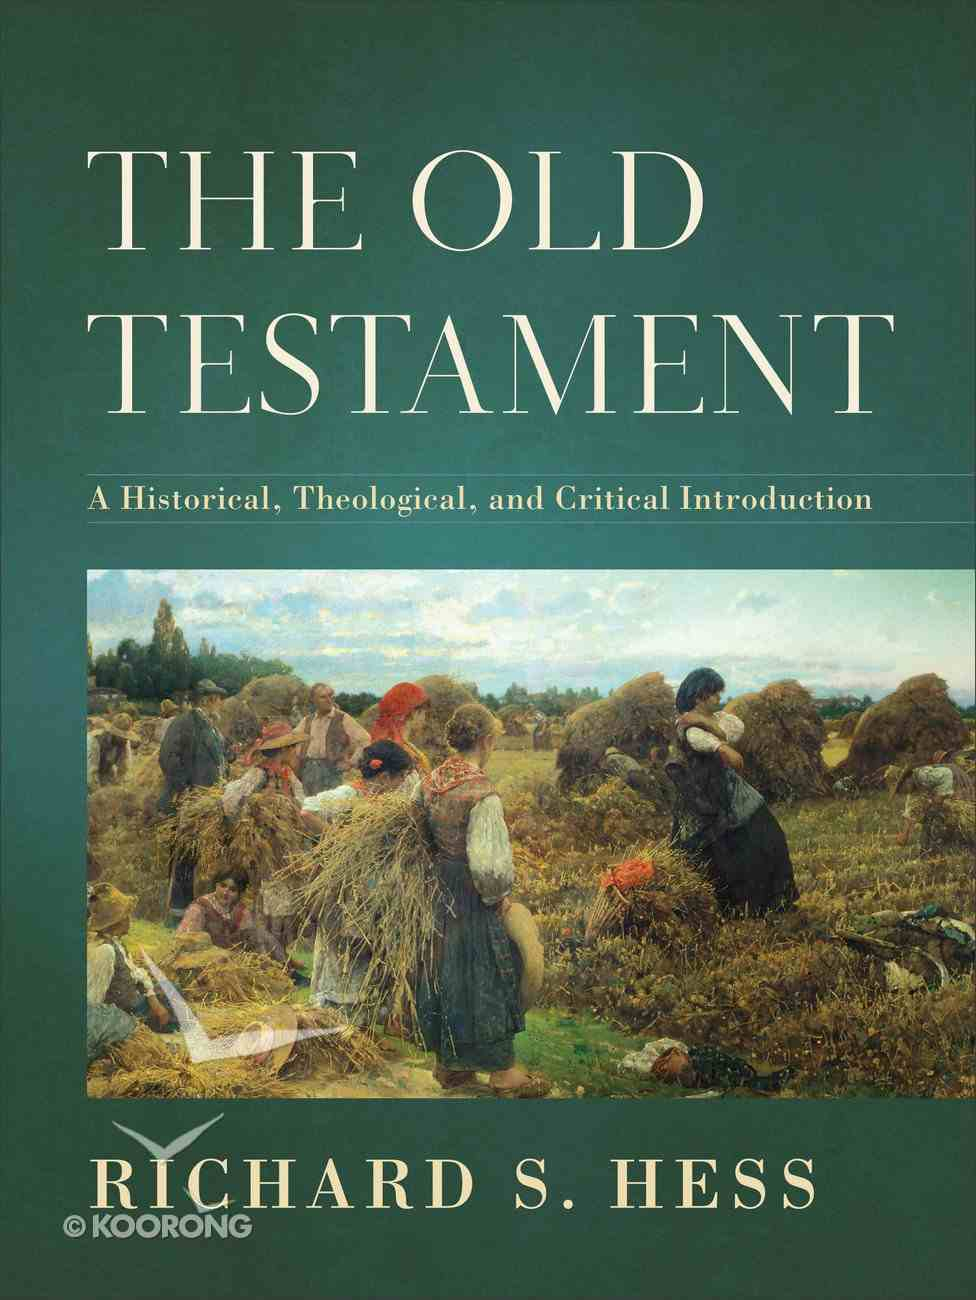 The Old Testament: A Historical, Theological, and Critical Introduction Hardback